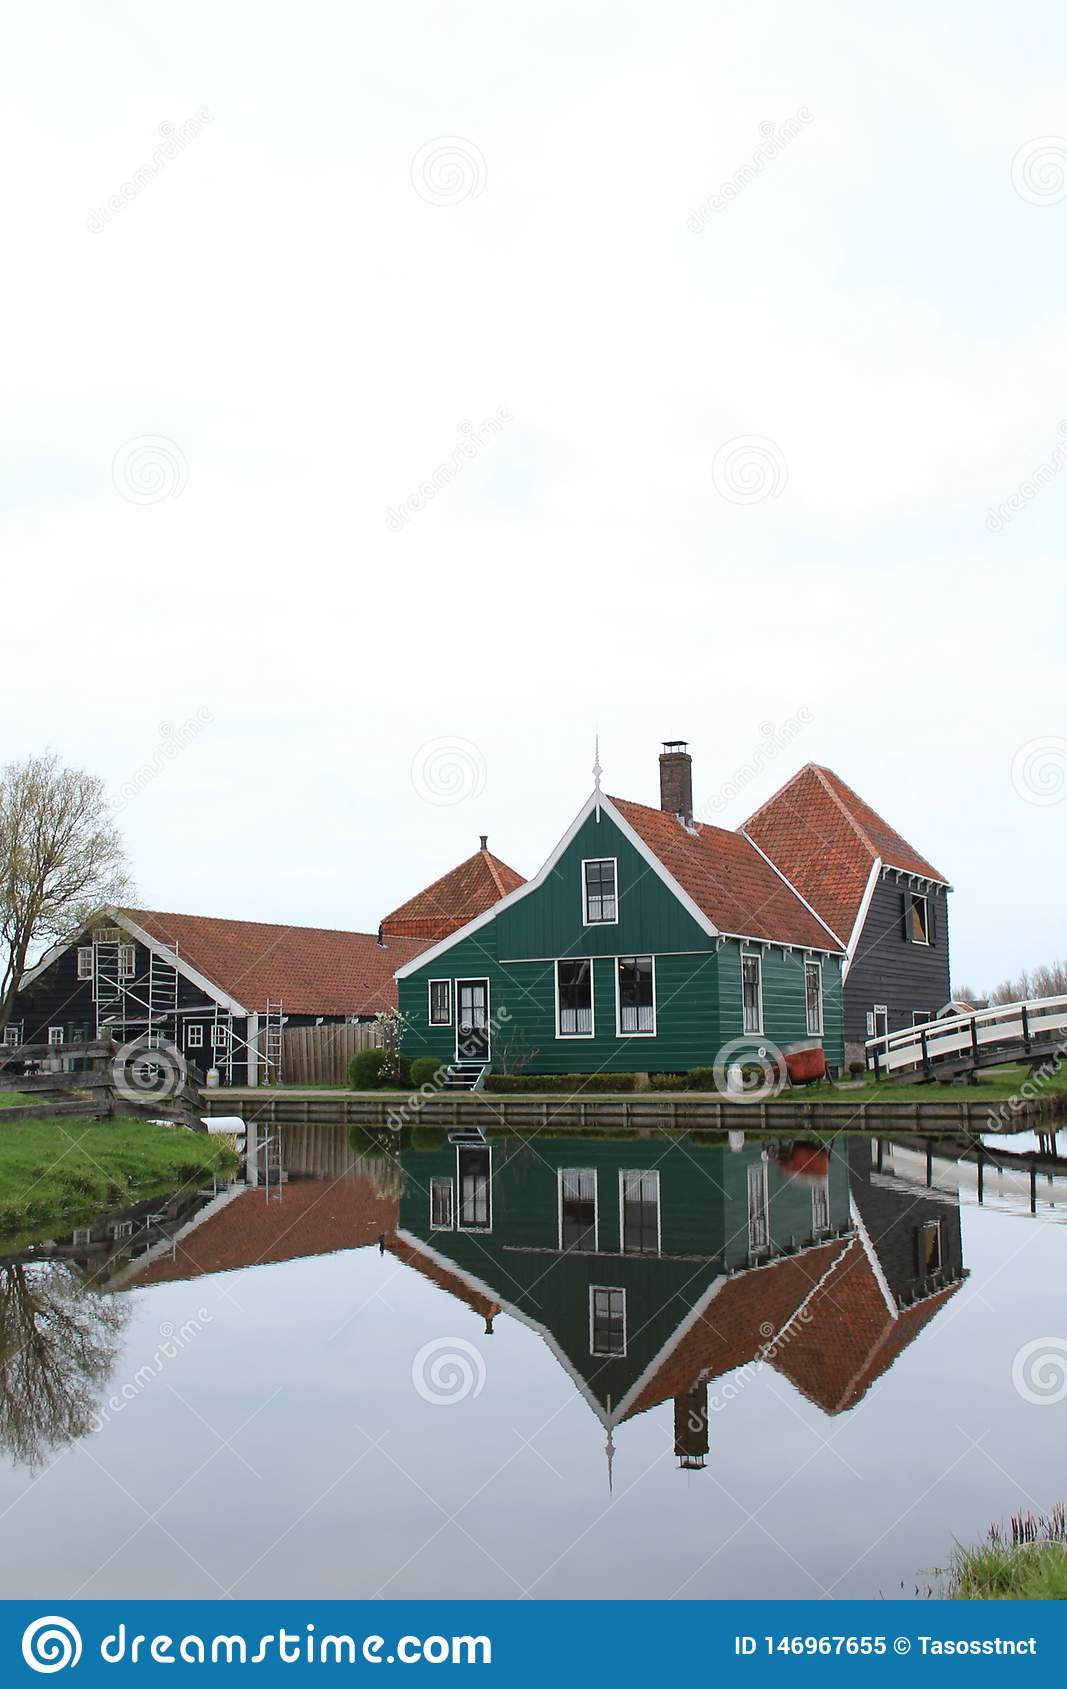 A HOUSE REFLECTING AT THE CALM WATERS OF ZAANSE SCHANS